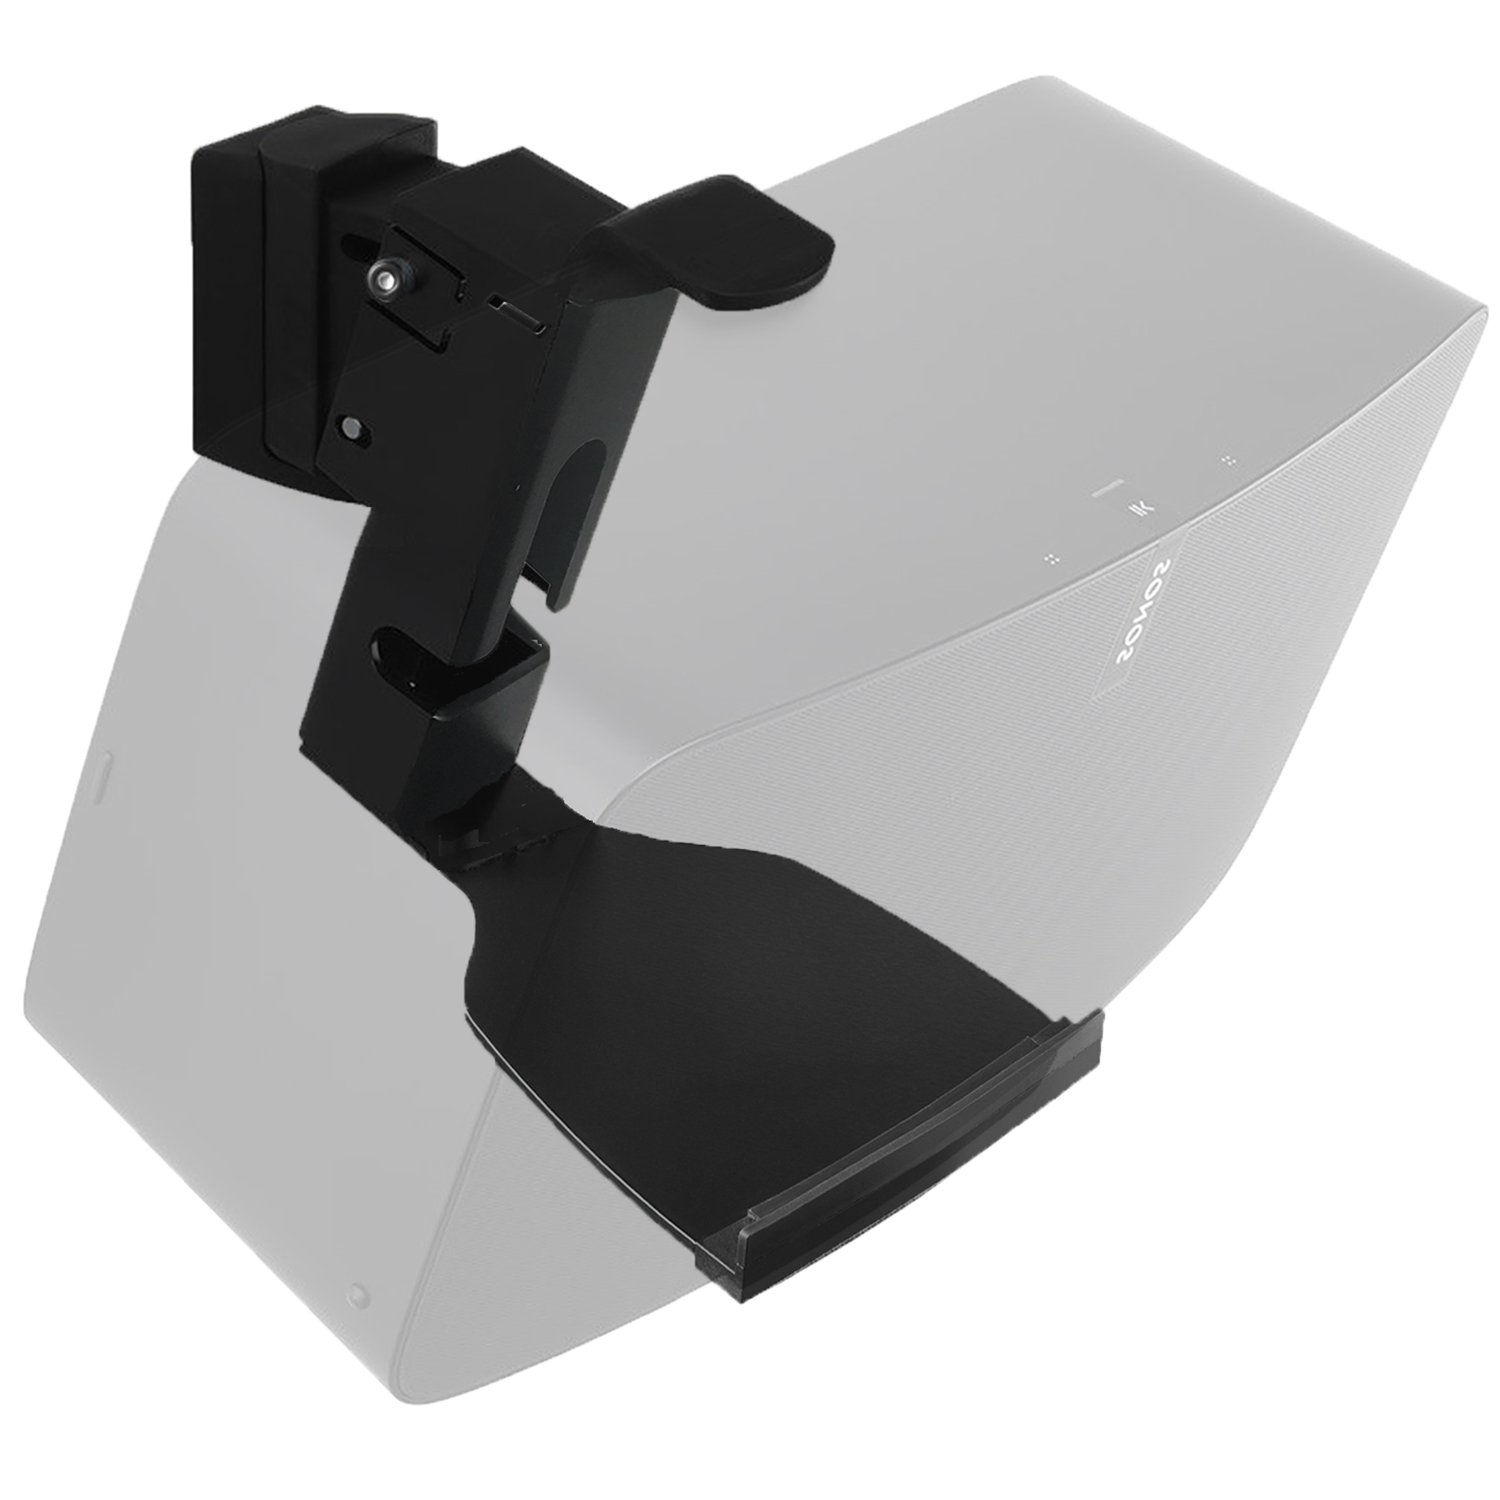 Hold up to 16 lbs 1Pack Black WALI SONOS Speaker Wall Mount Brackets for SONOS Play 5 Gen2 Multiple Adjustments SWM002 7 kg,